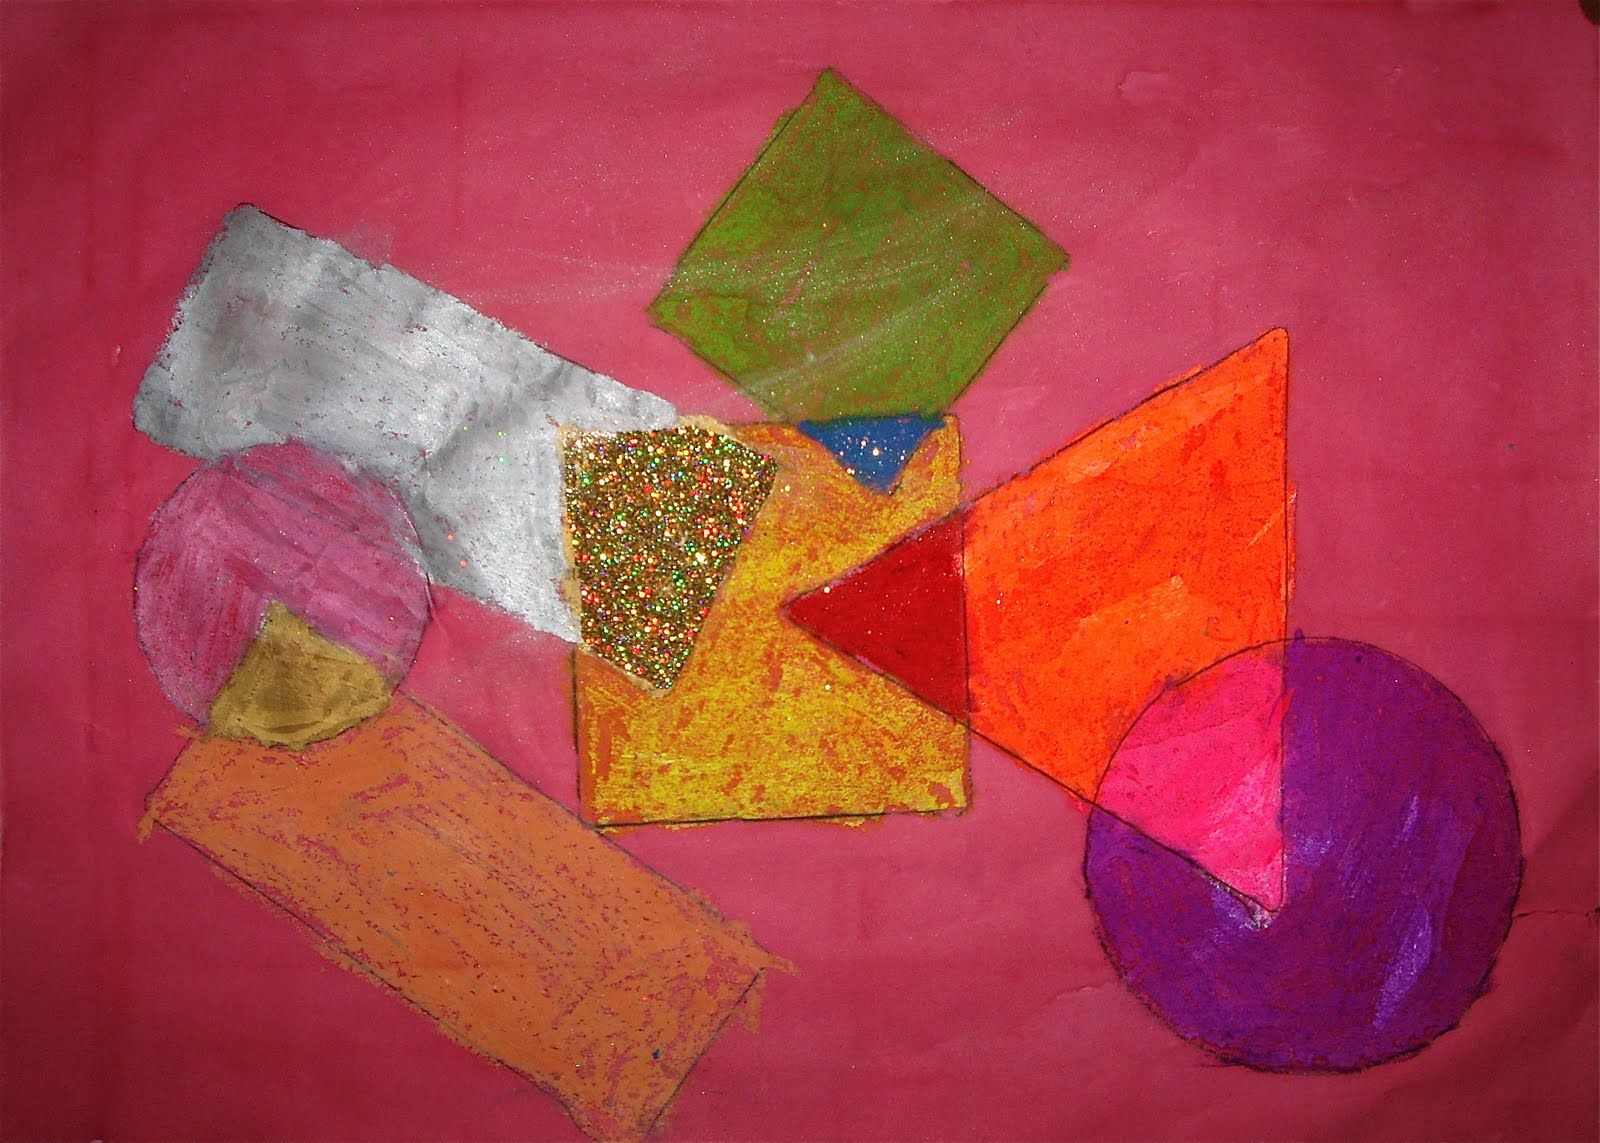 Great Abstract Art Lesson Using Shape Color Overlapping And Focal Point